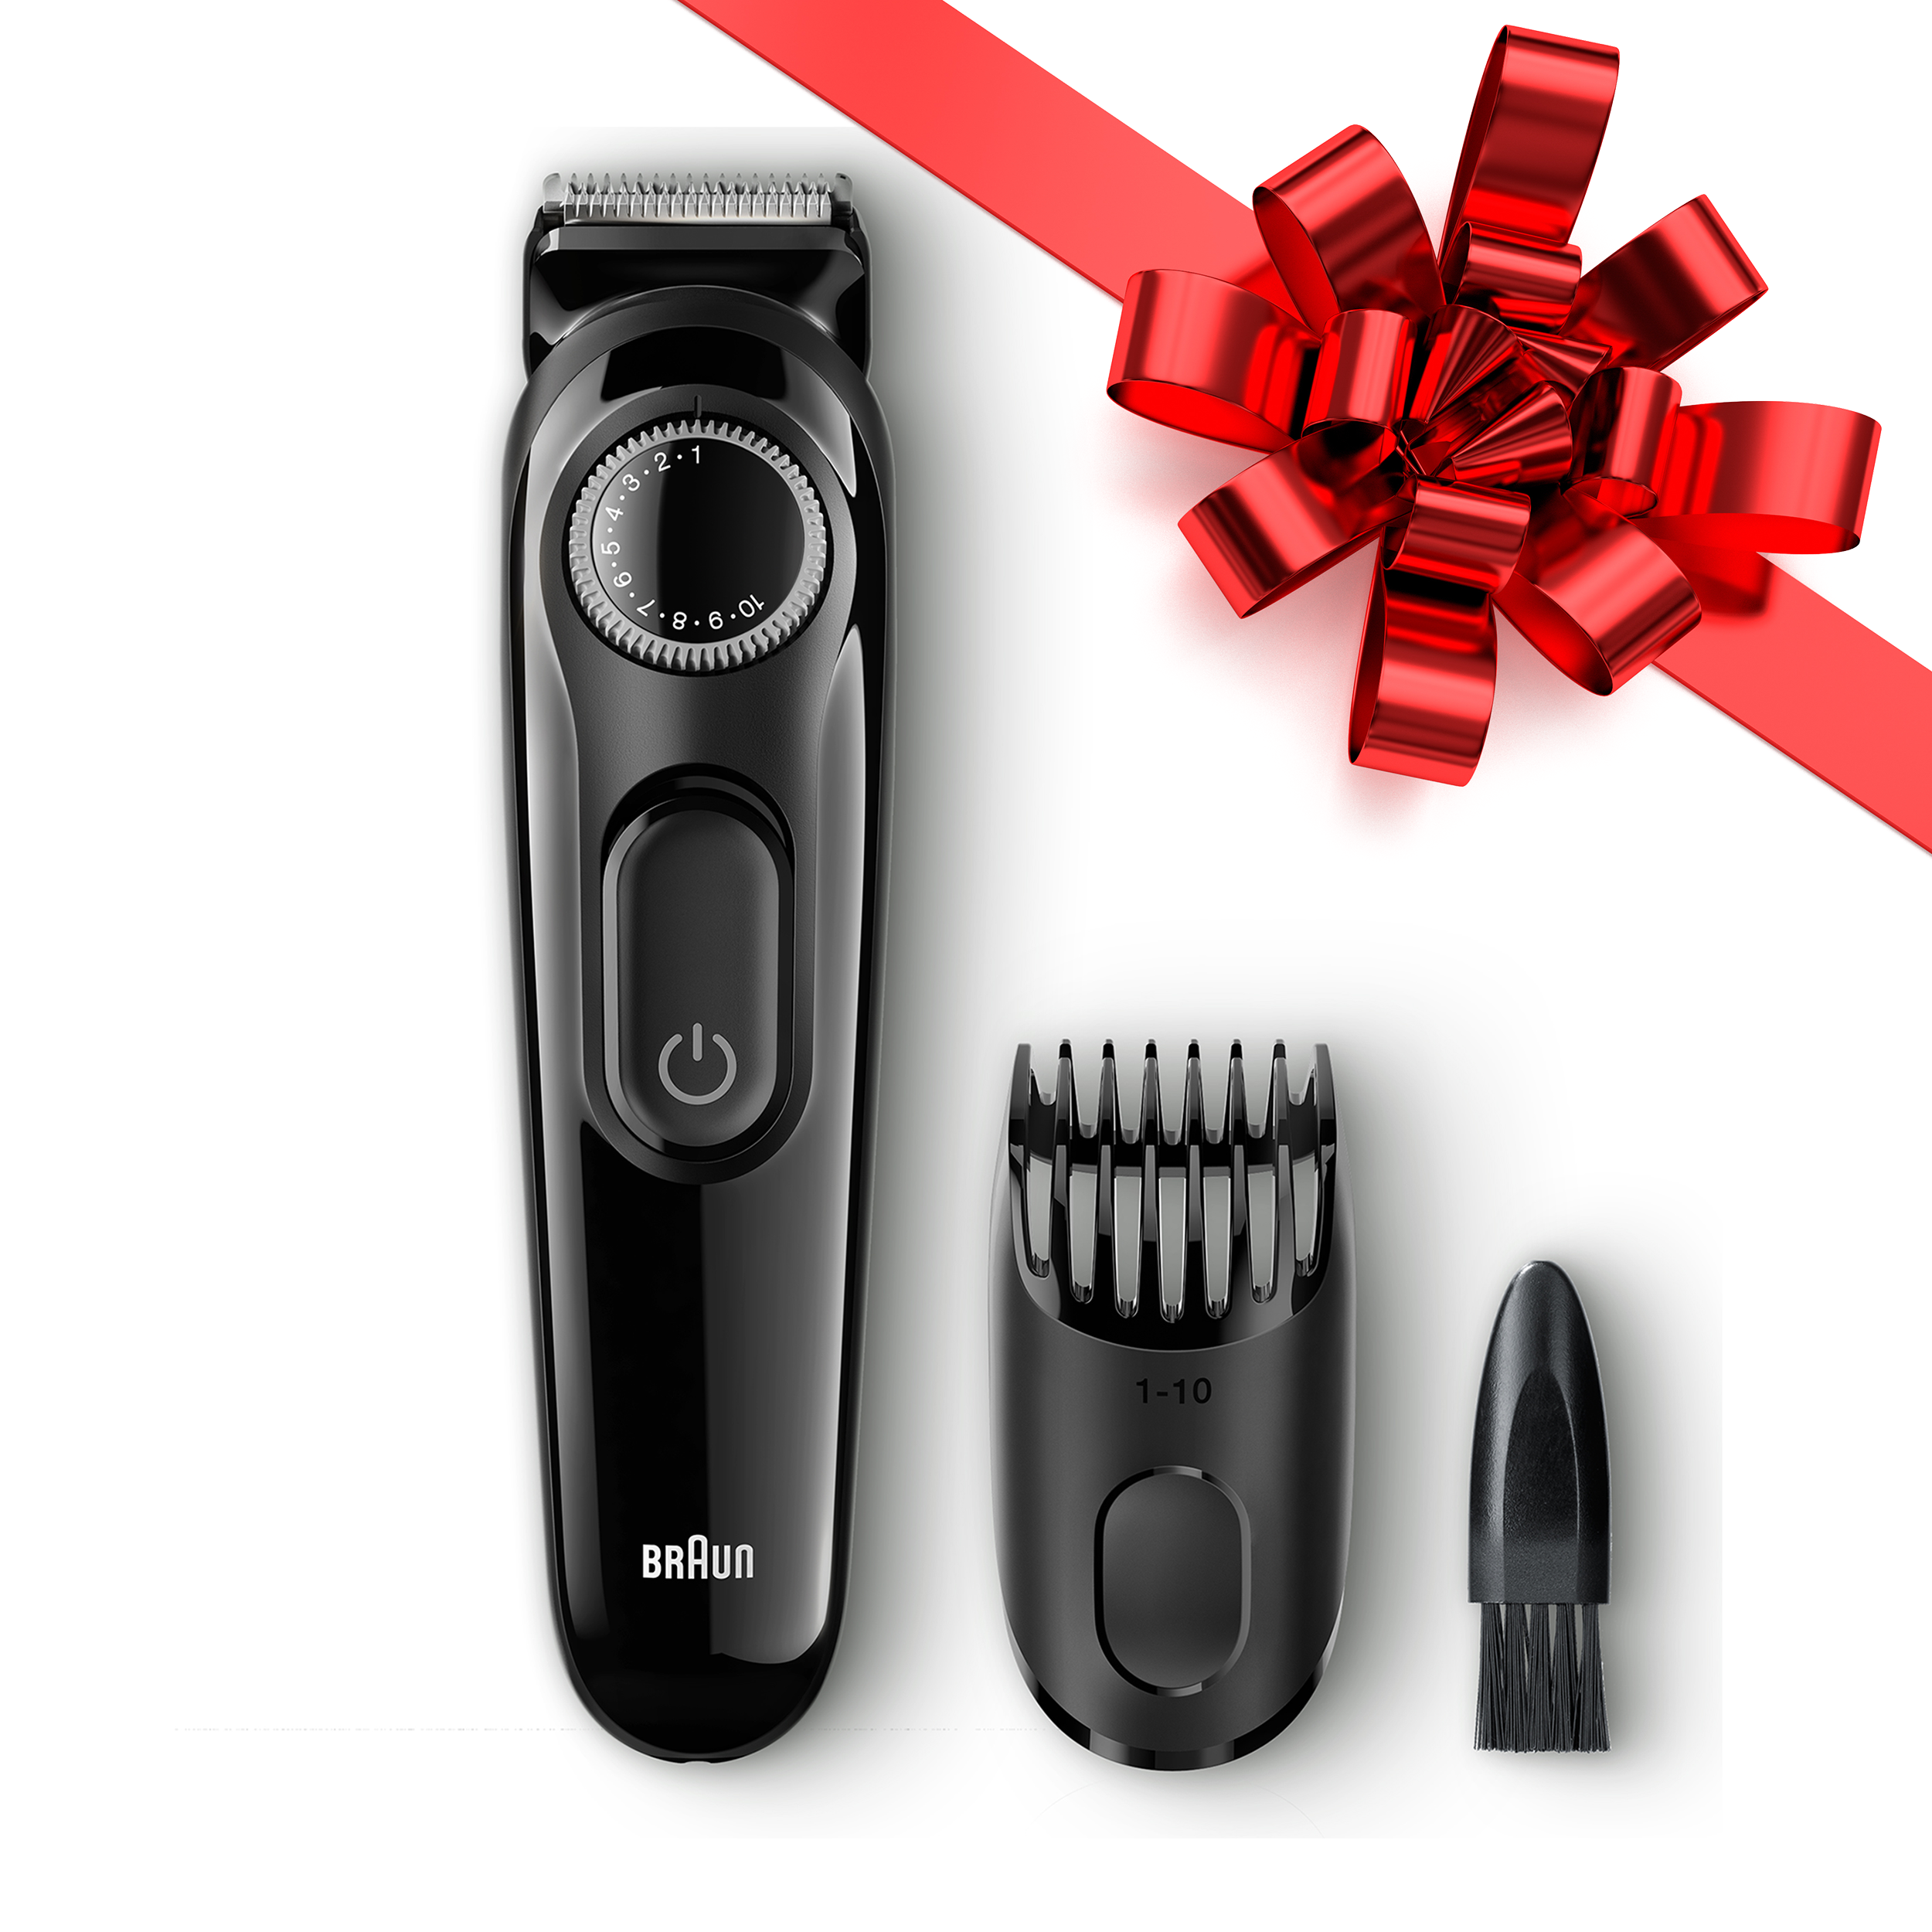 Braun BT3020 ($5 Rebate Available) Men's Beard Trimmer, 20 Precision Length Settings for Ultimate Precision, Includes Adaptable Comb